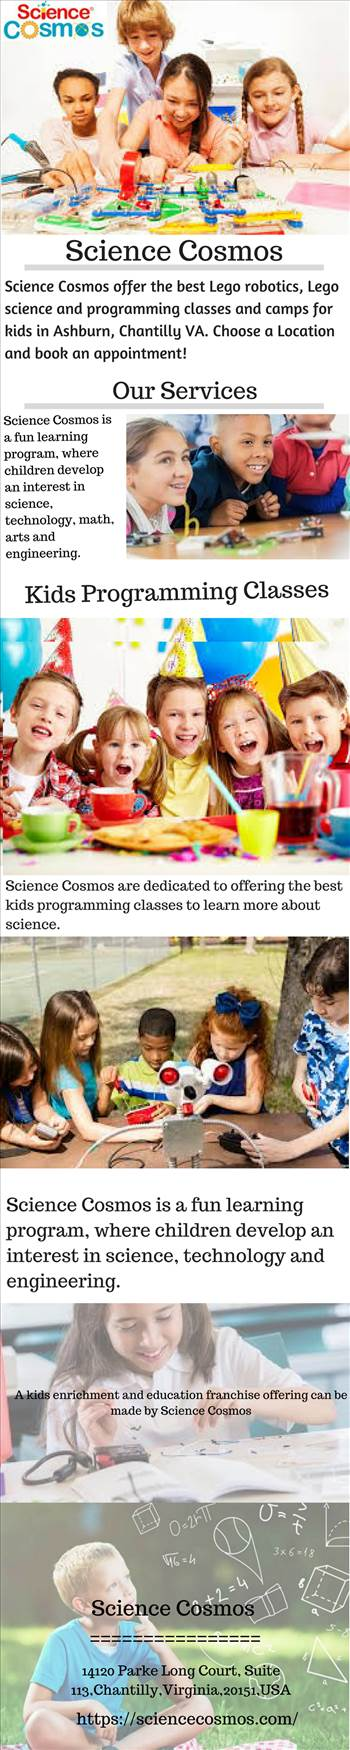 Science Cosmos.jpg by ScienceCosmos